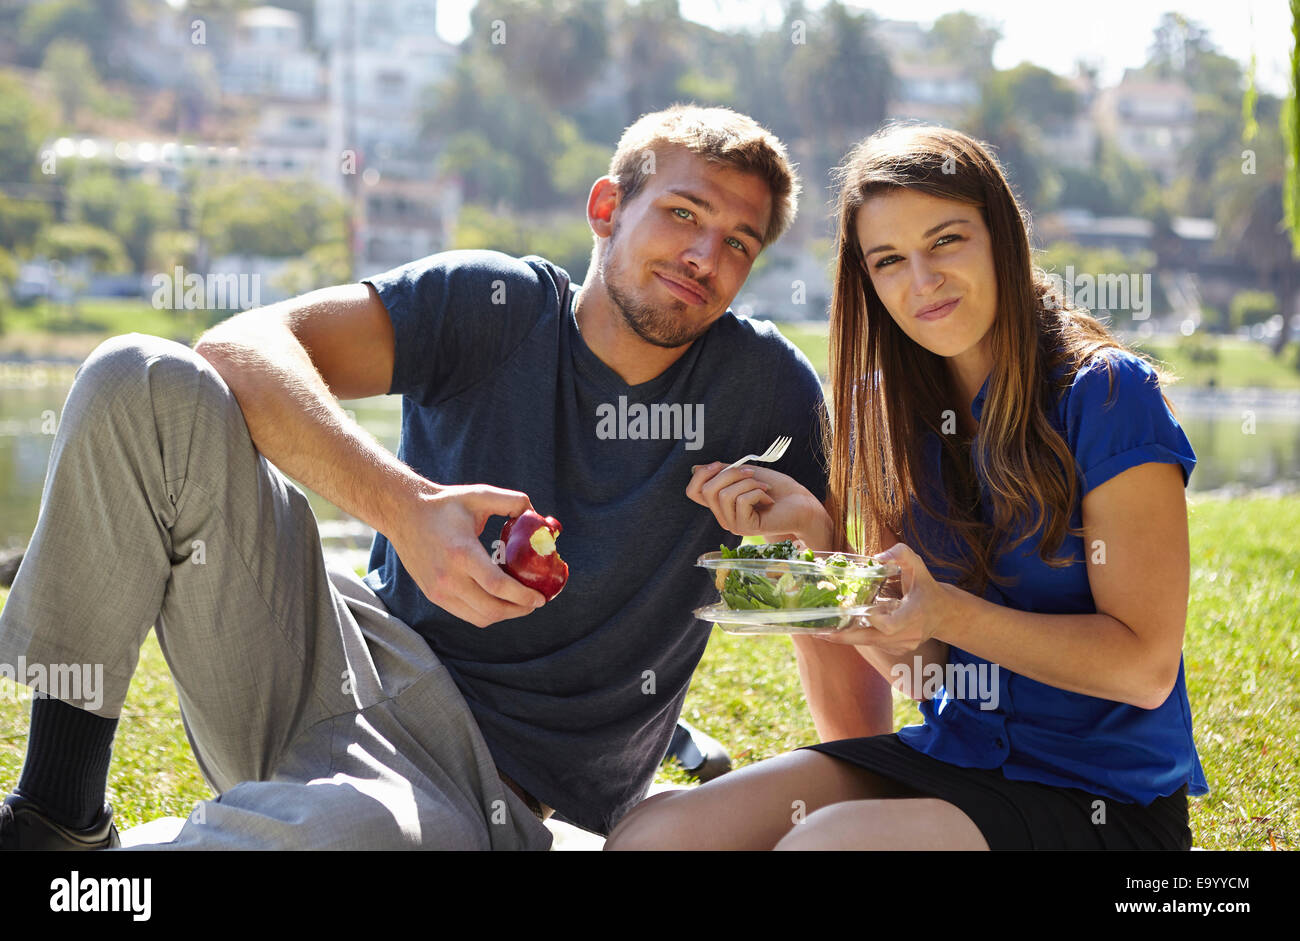 Couple picnicking, Echo Park, Los Angeles, California, US - Stock Image